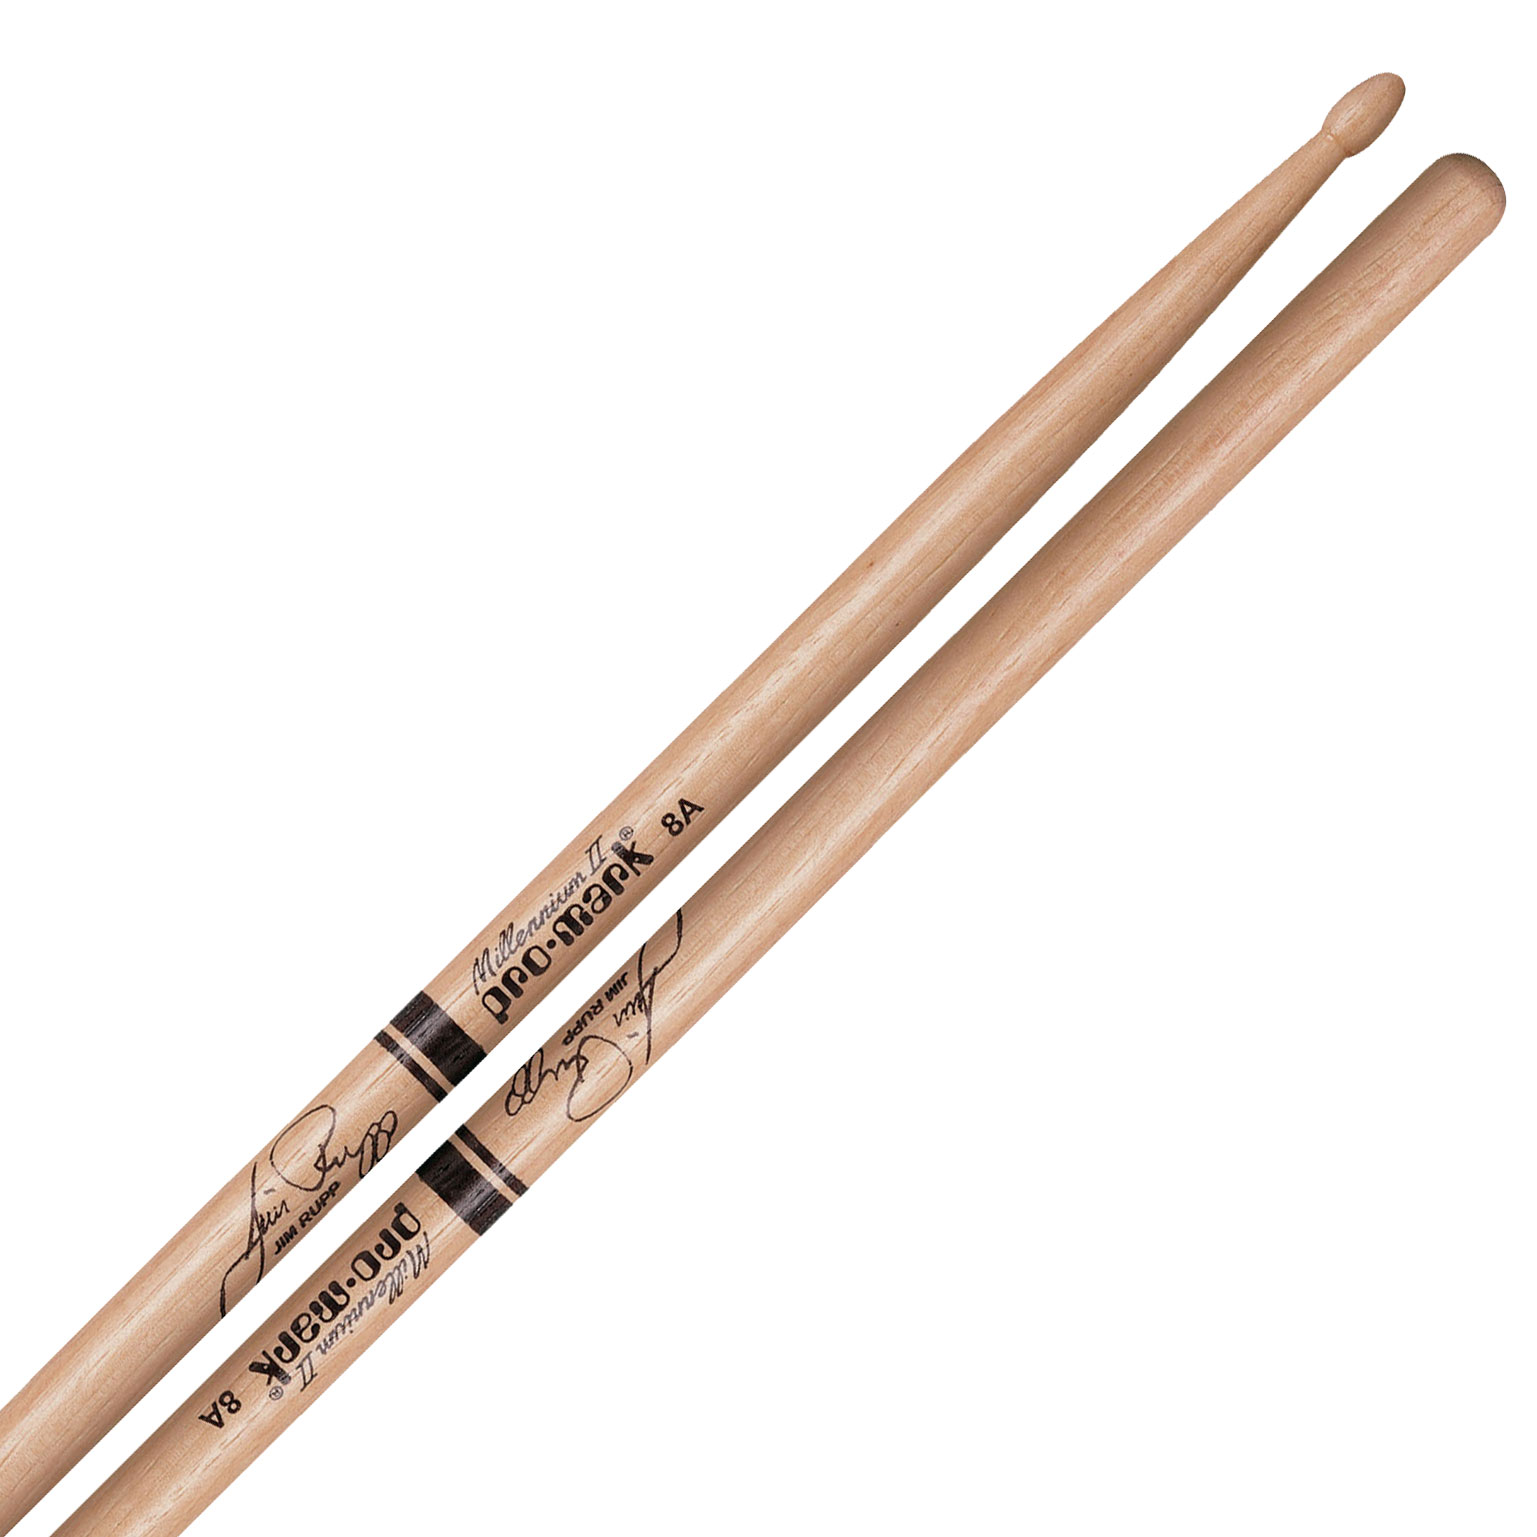 Promark Jim Rupp Signature Drumsticks